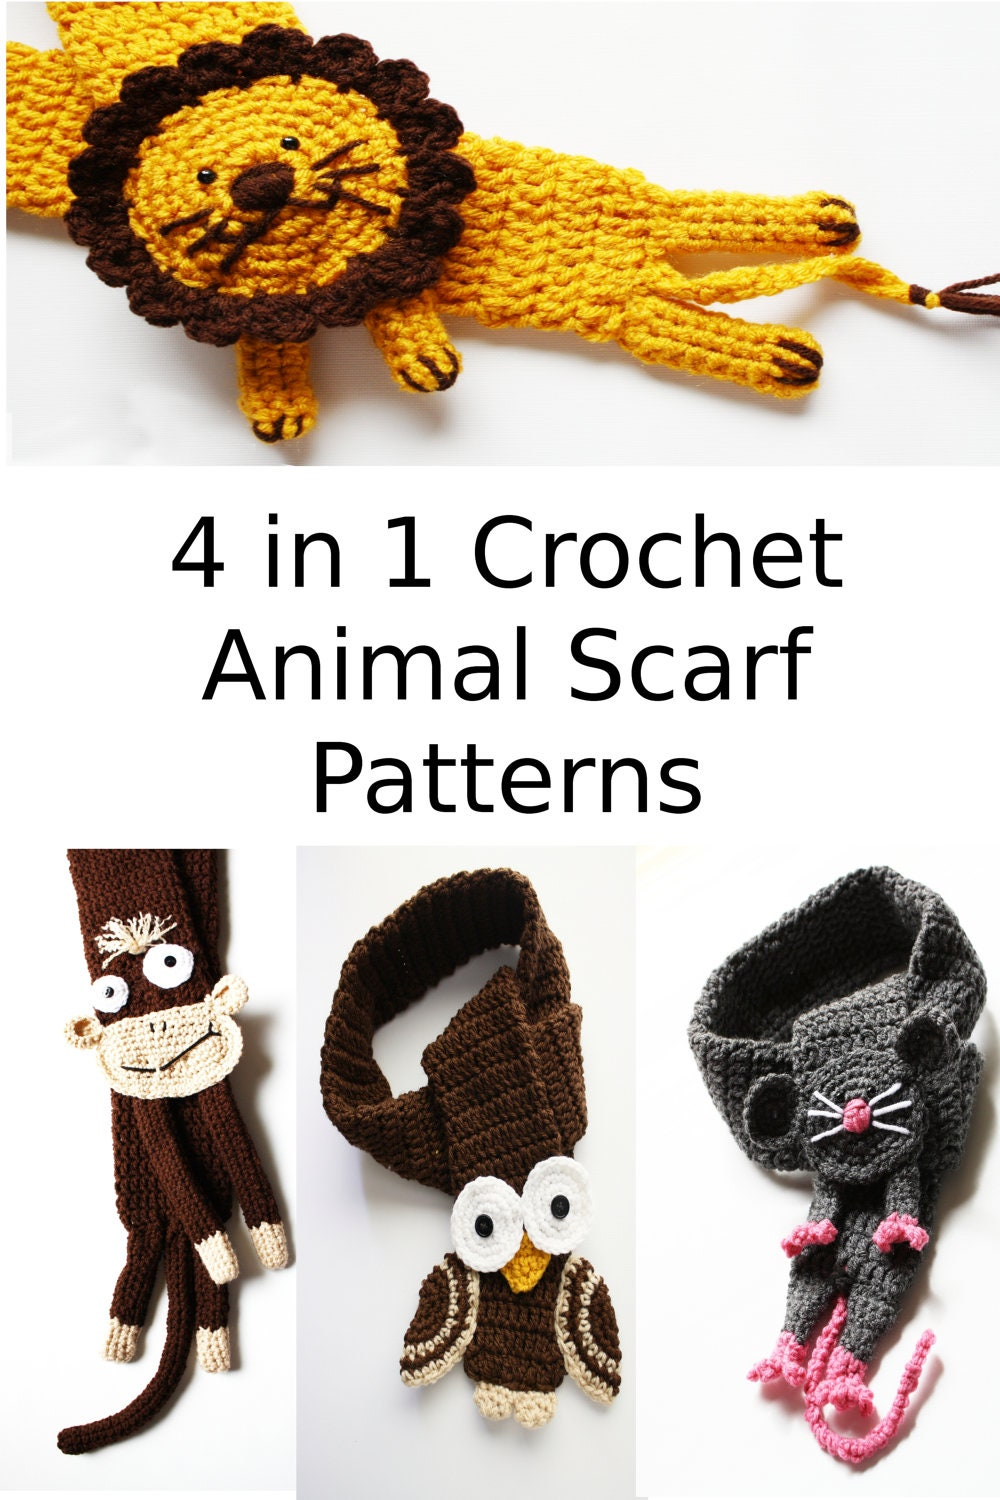 Free Crochet Patterns For Animal Scarves : Instant download 4 Crochet Animal Scarf Patterns in by ...